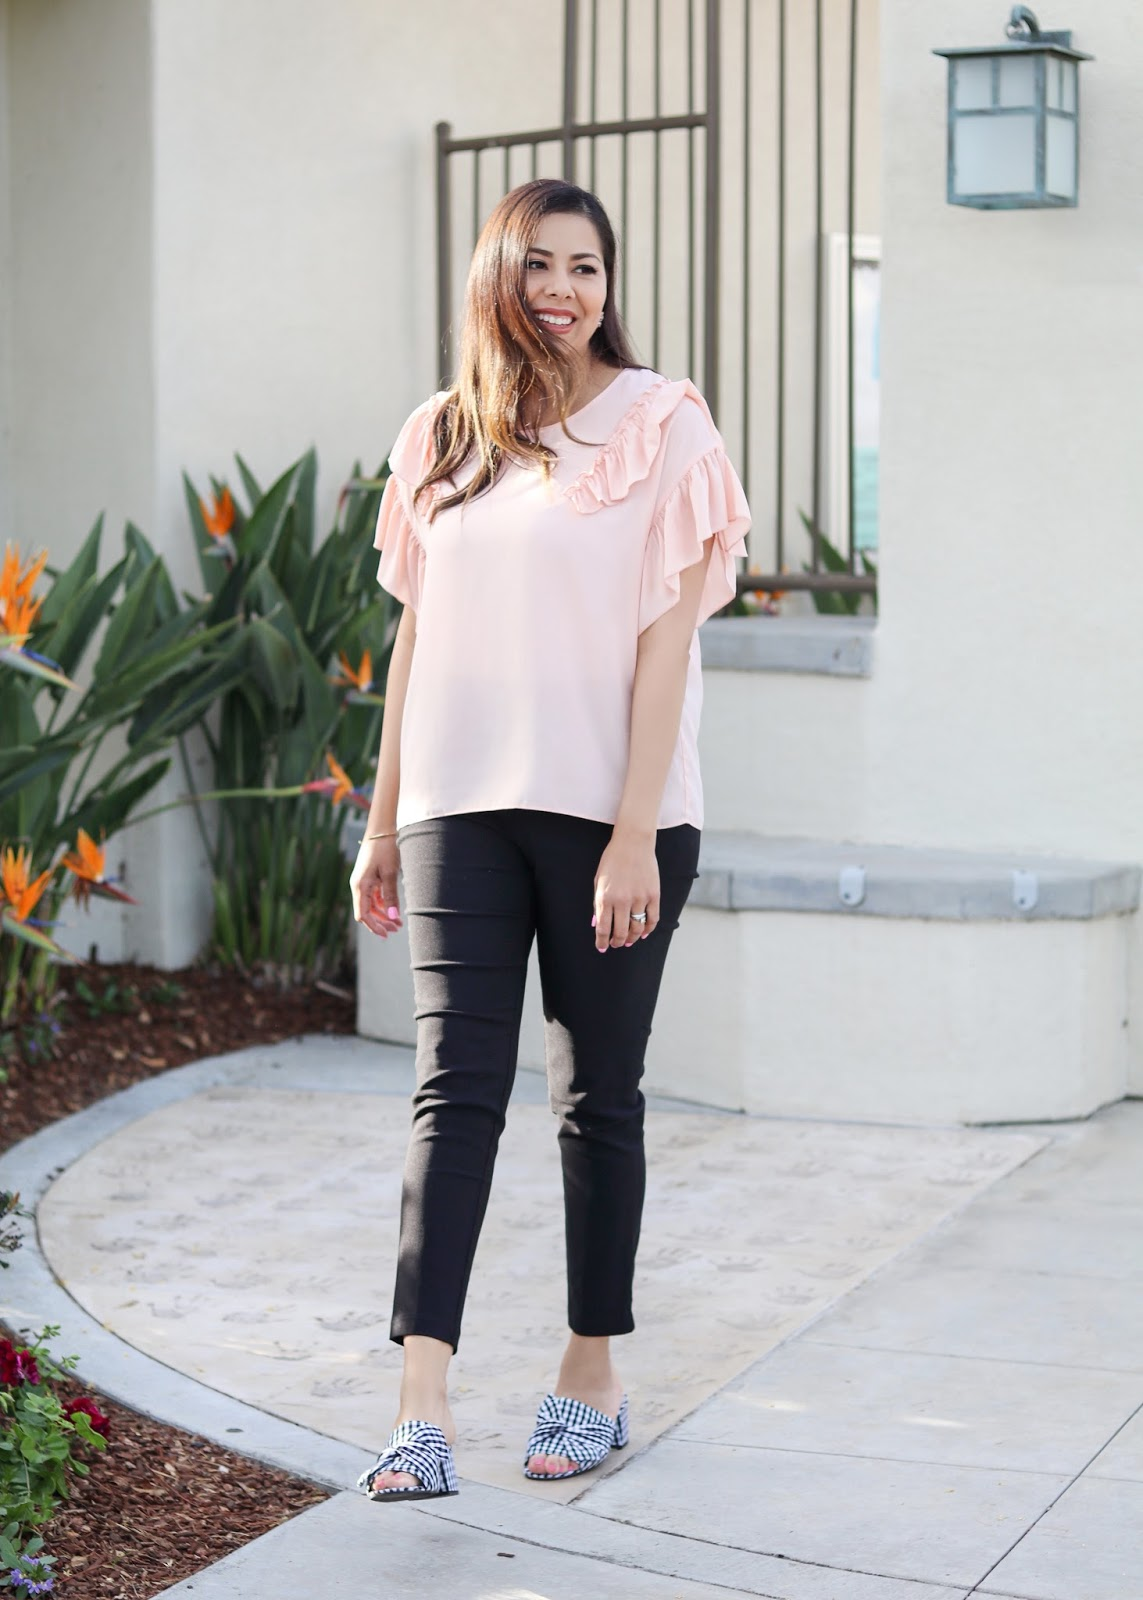 spring pastels with JCPenney, JCPenney blogger